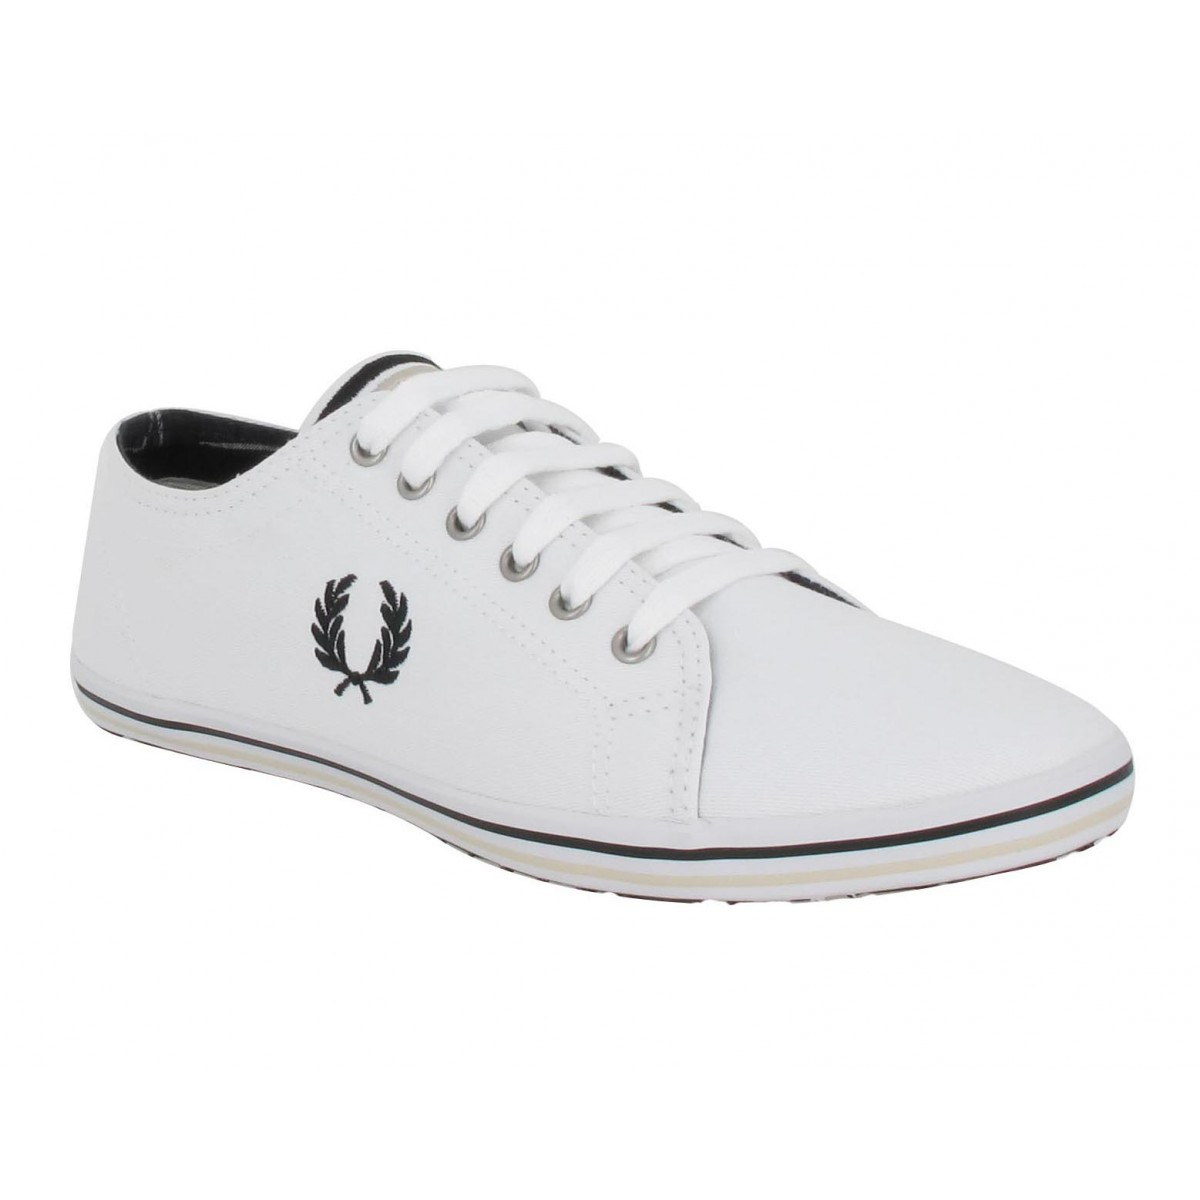 Baskets FRED PERRY Kingston toile Homme Blanc + Noir